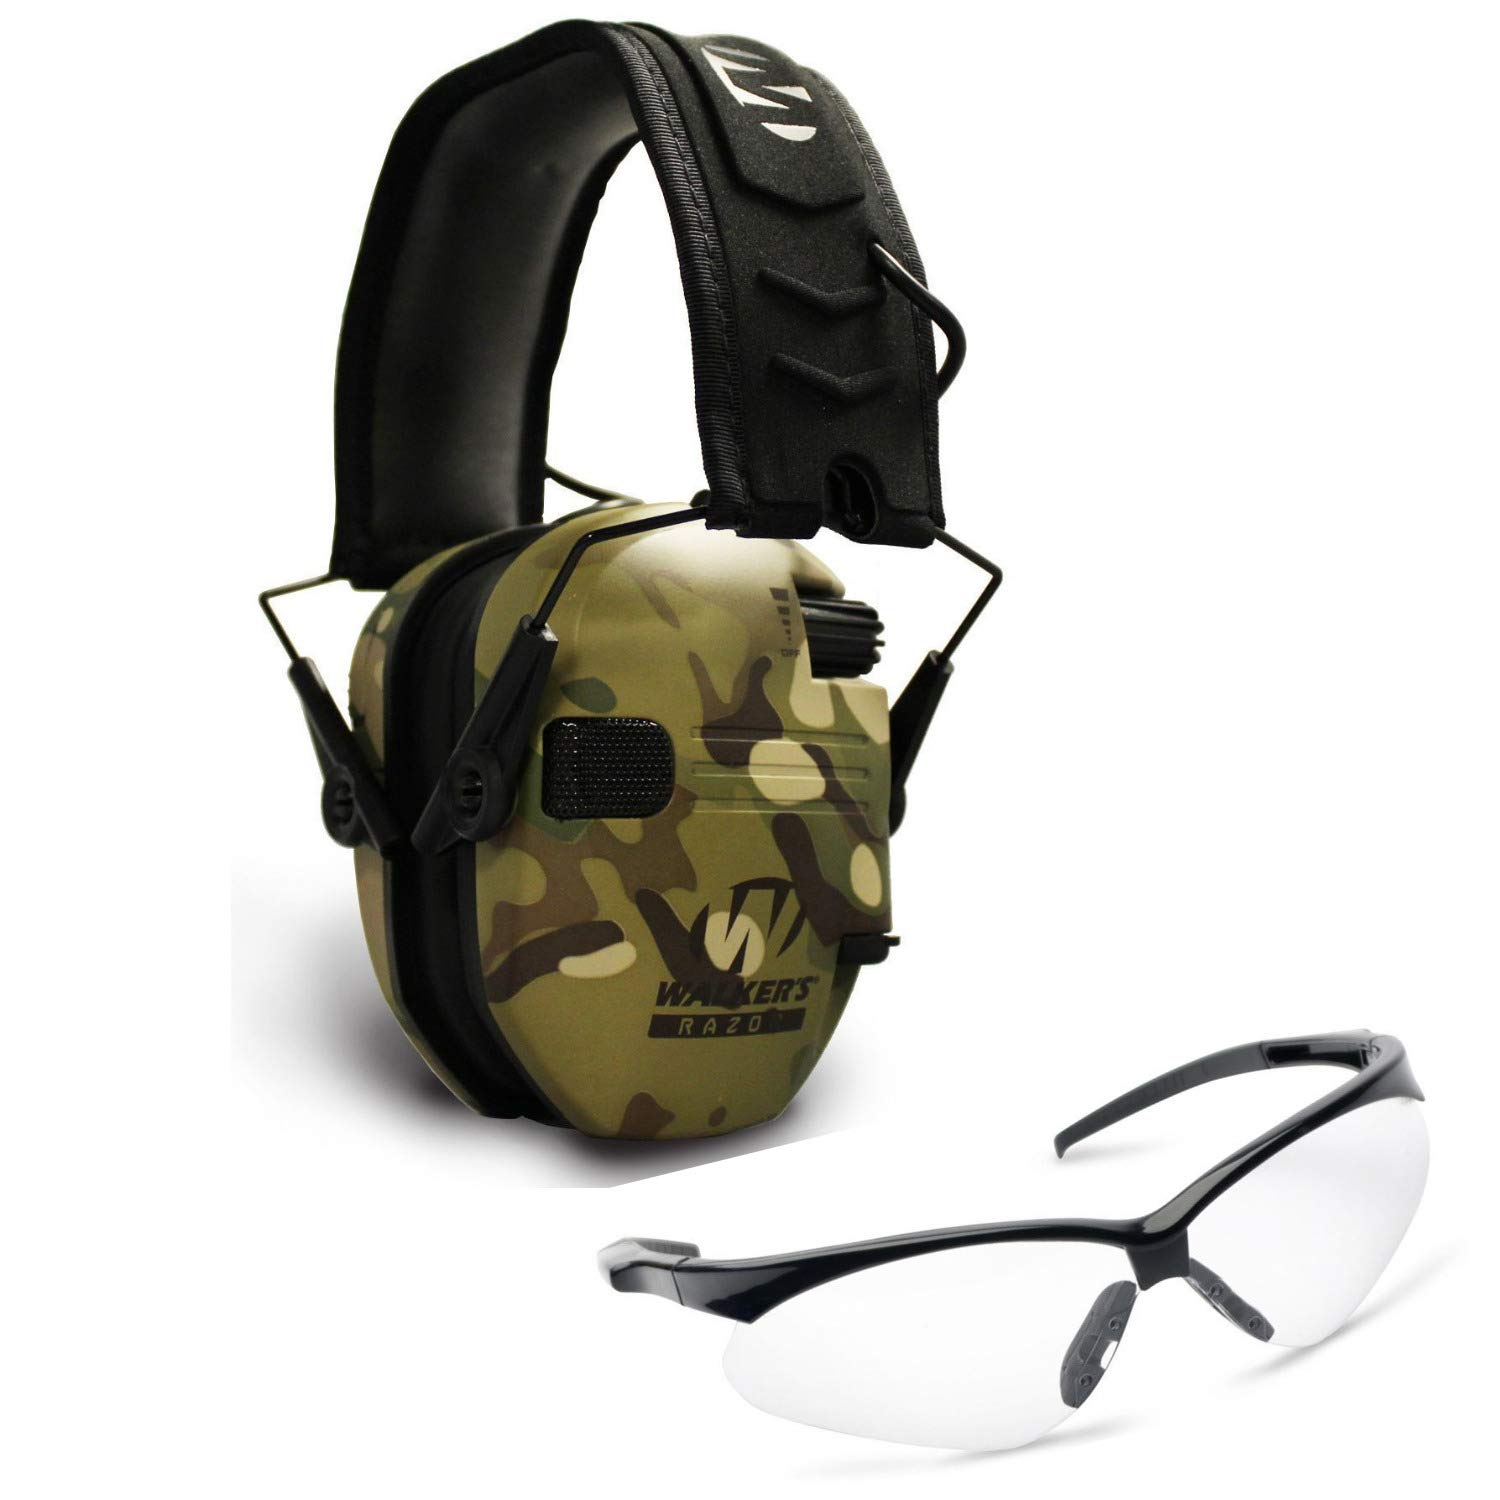 Walkers Razor Slim Electronic Shooting Hearing Protection Muff, Multicam, Tan (Sound Amplification and Suppression) with Shooting Glasses Kit by Walkers (Image #1)